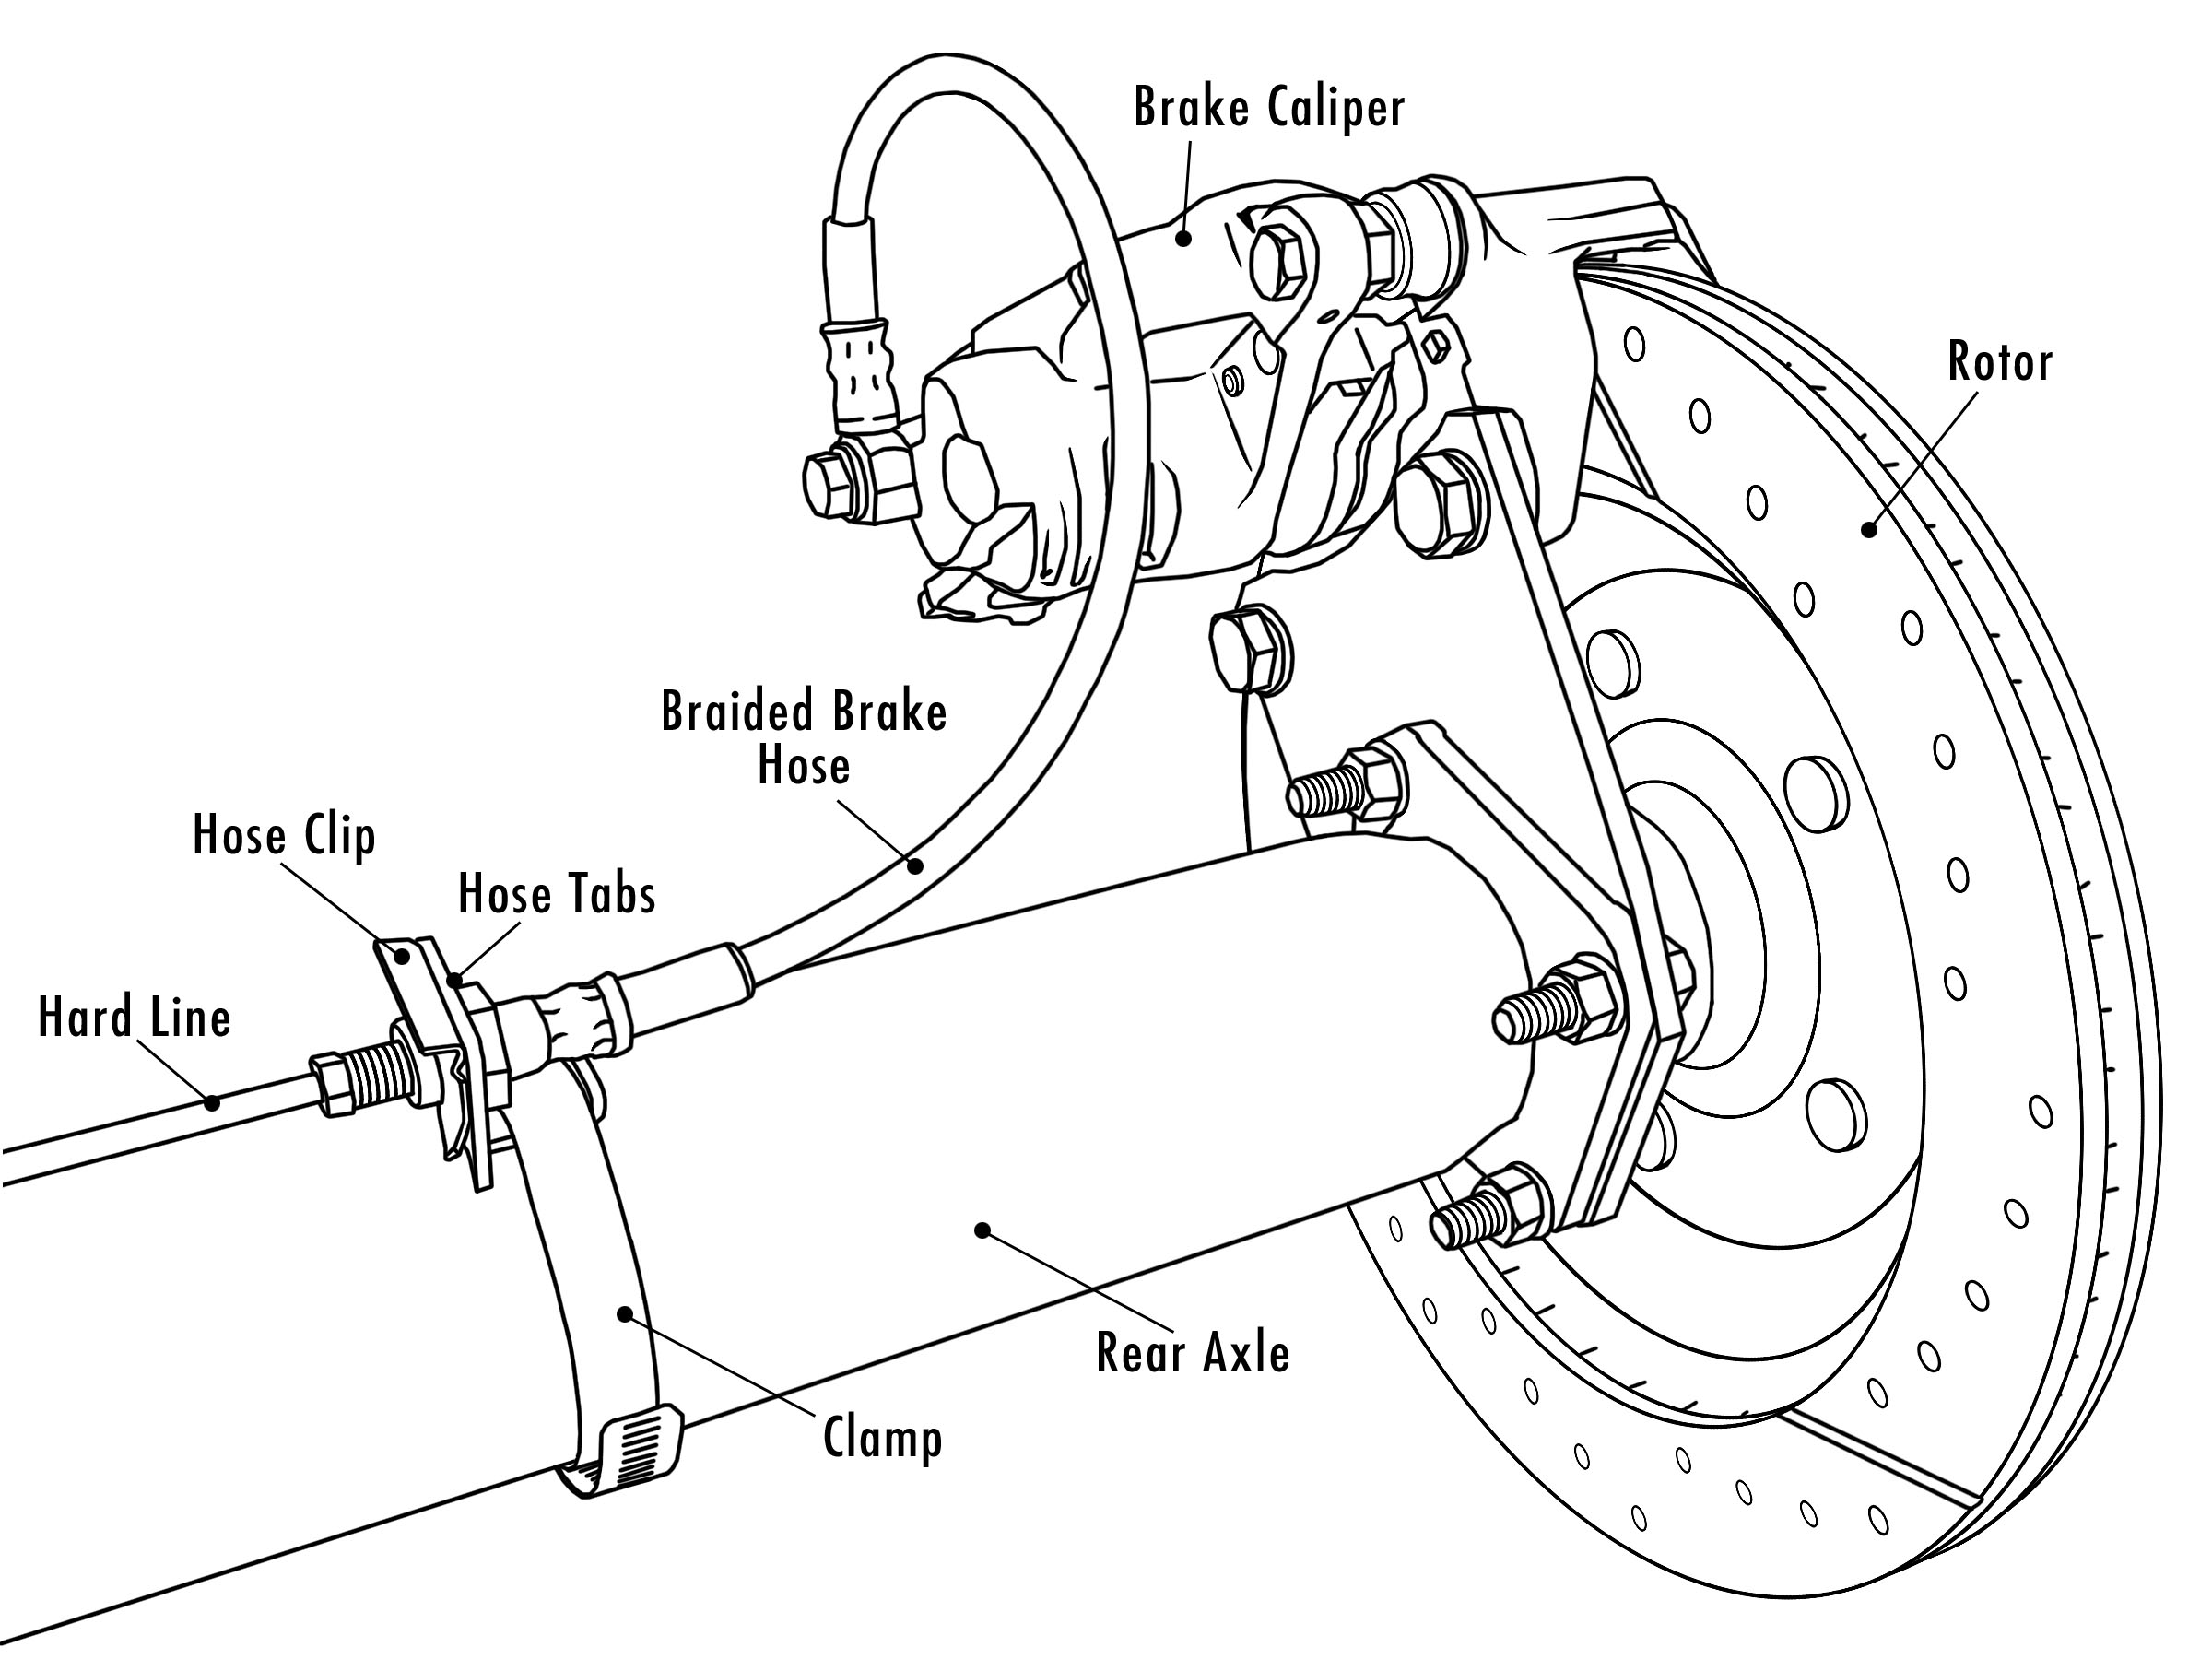 Construction And Working Of Brakes Blog